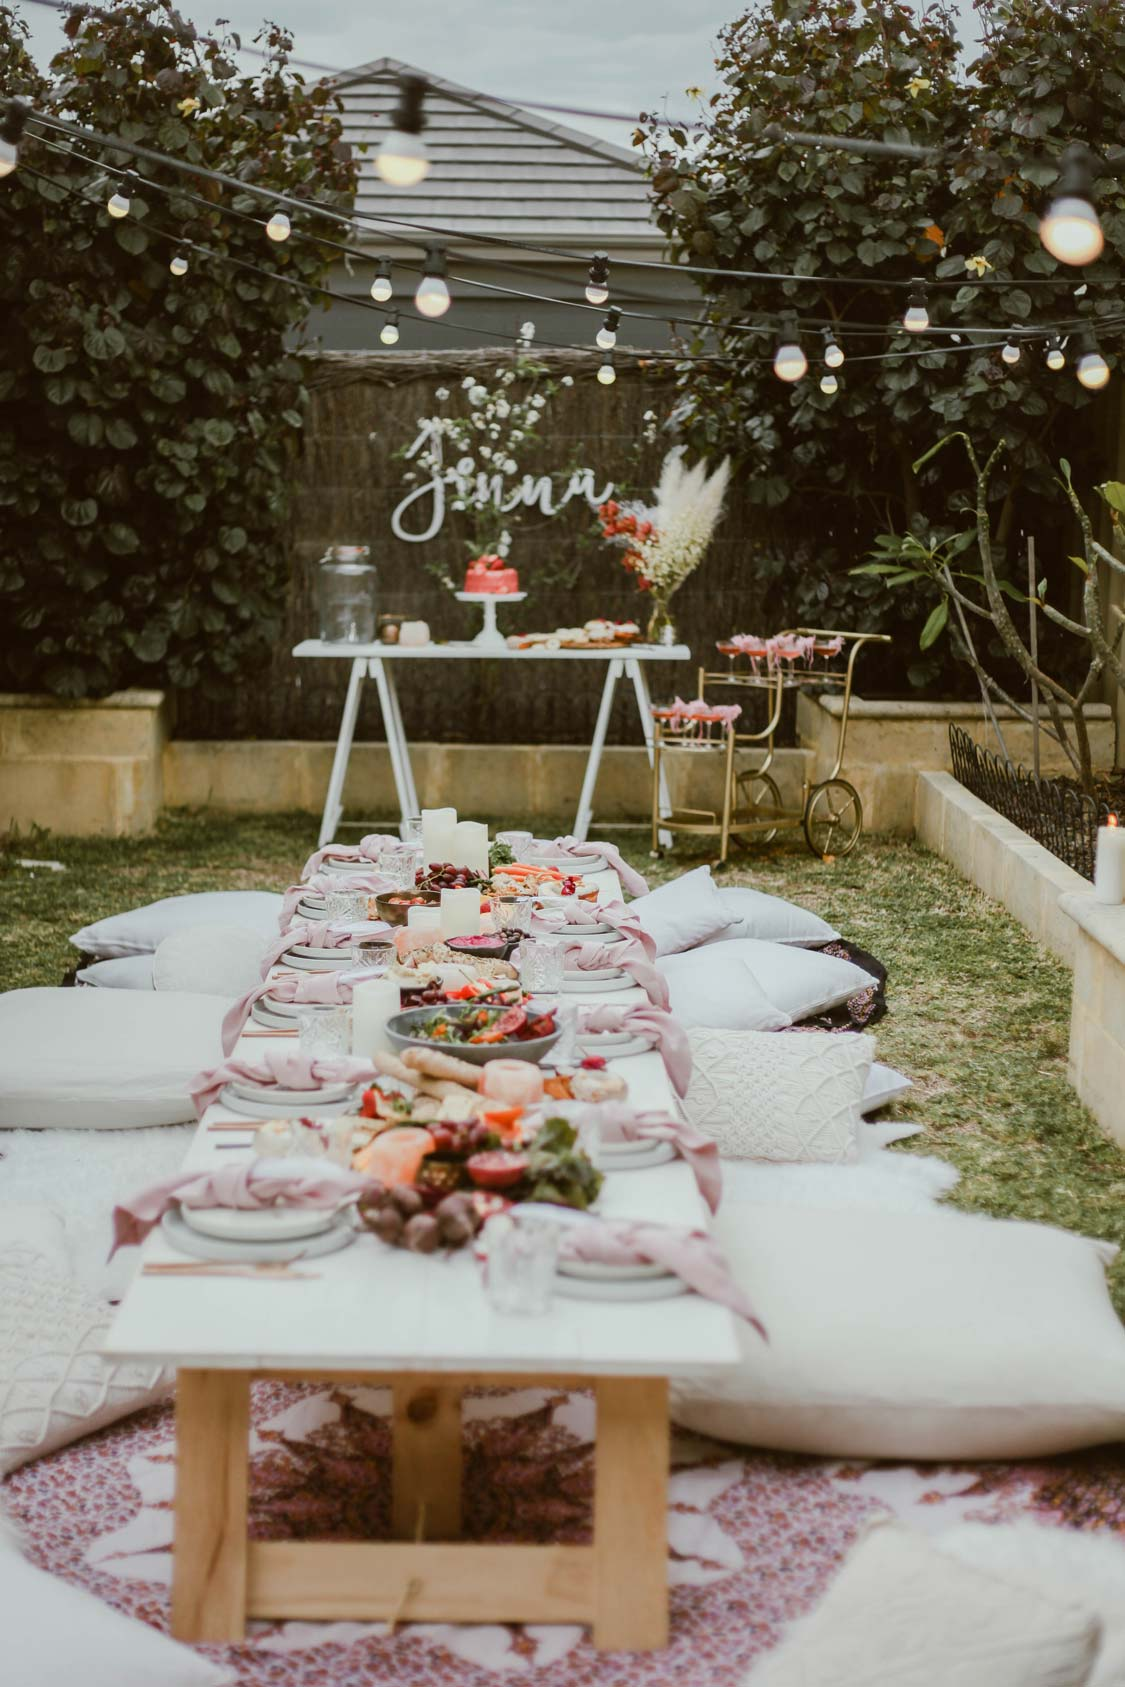 Pretty_Willow_Prop_Hire_Perth_Bohemium_Eclectic_Wedding_Events_Bridal_Shower_Hens_Furniture_CONTACT.jpg